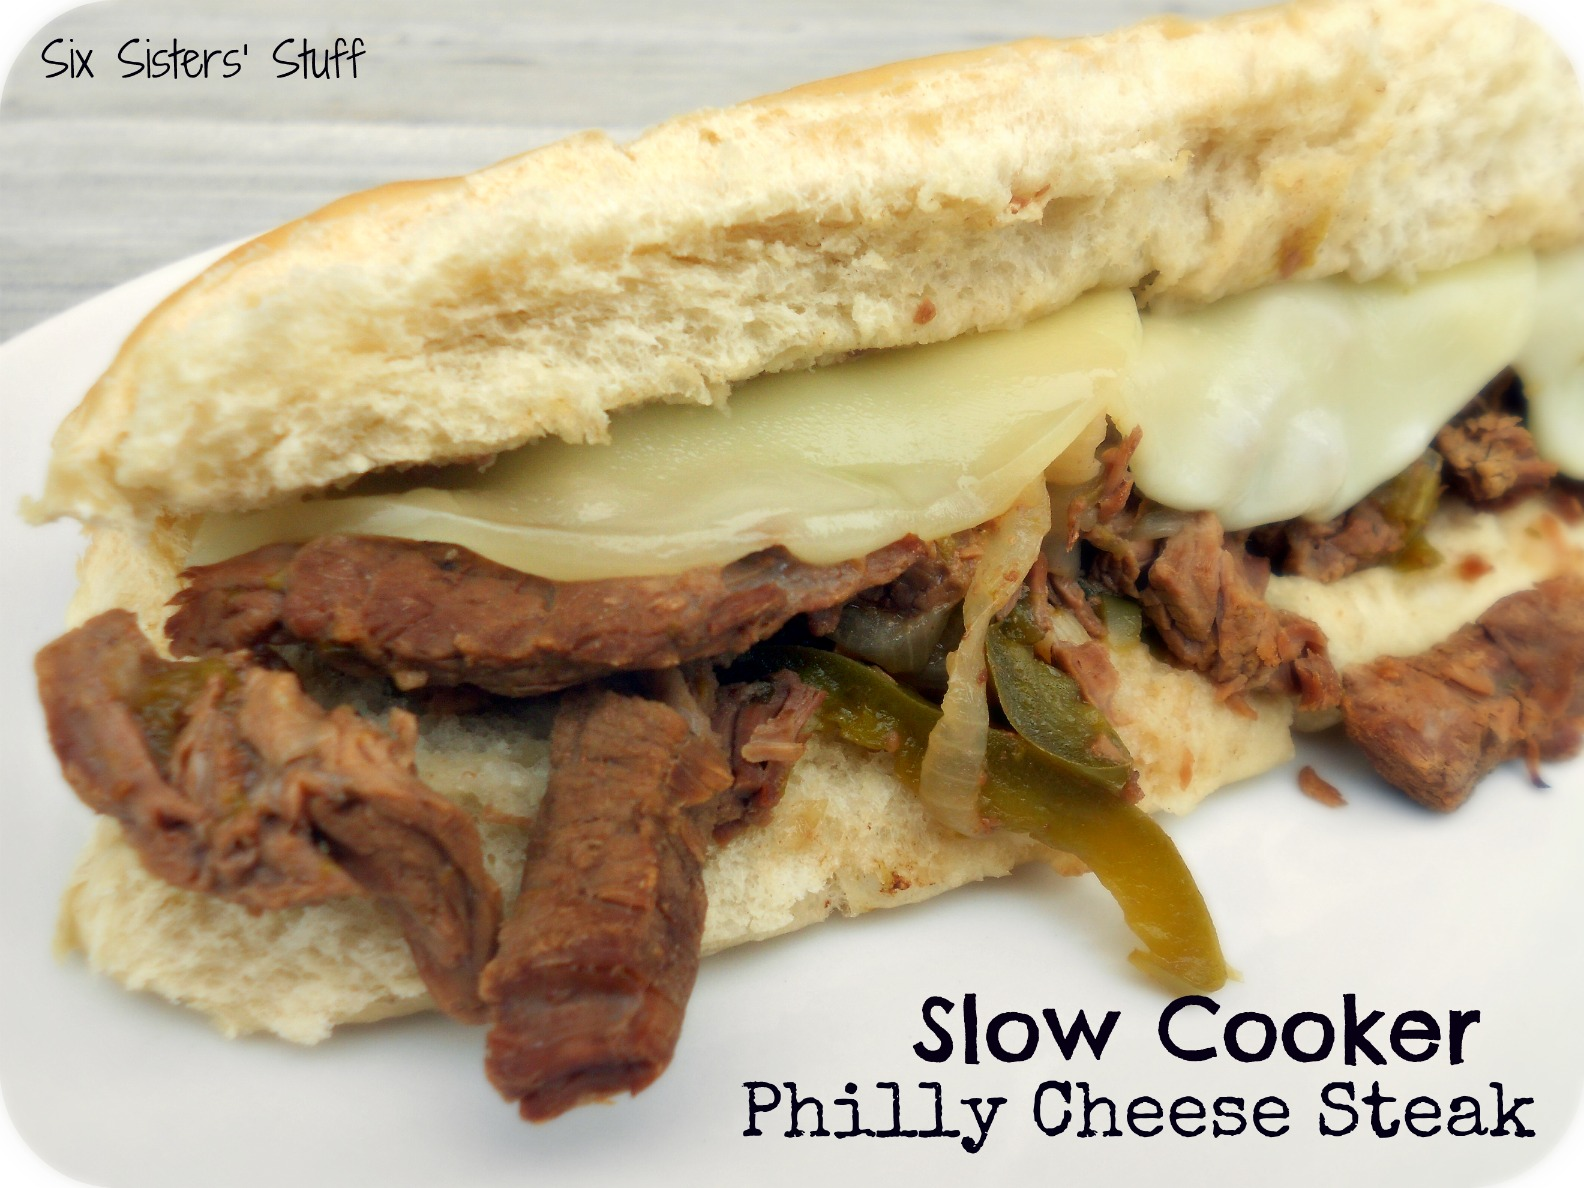 Slow Cooker Philly Cheese Steak moreover Curso Cajas Empaque Monos Canastas Decoradas Moldes Imprimir P 312 in addition 10295696 furthermore Dales Steak Seasoning Sauce 16 Ozs further 256571 High Expectations Asian Father. on a1 steak sauce